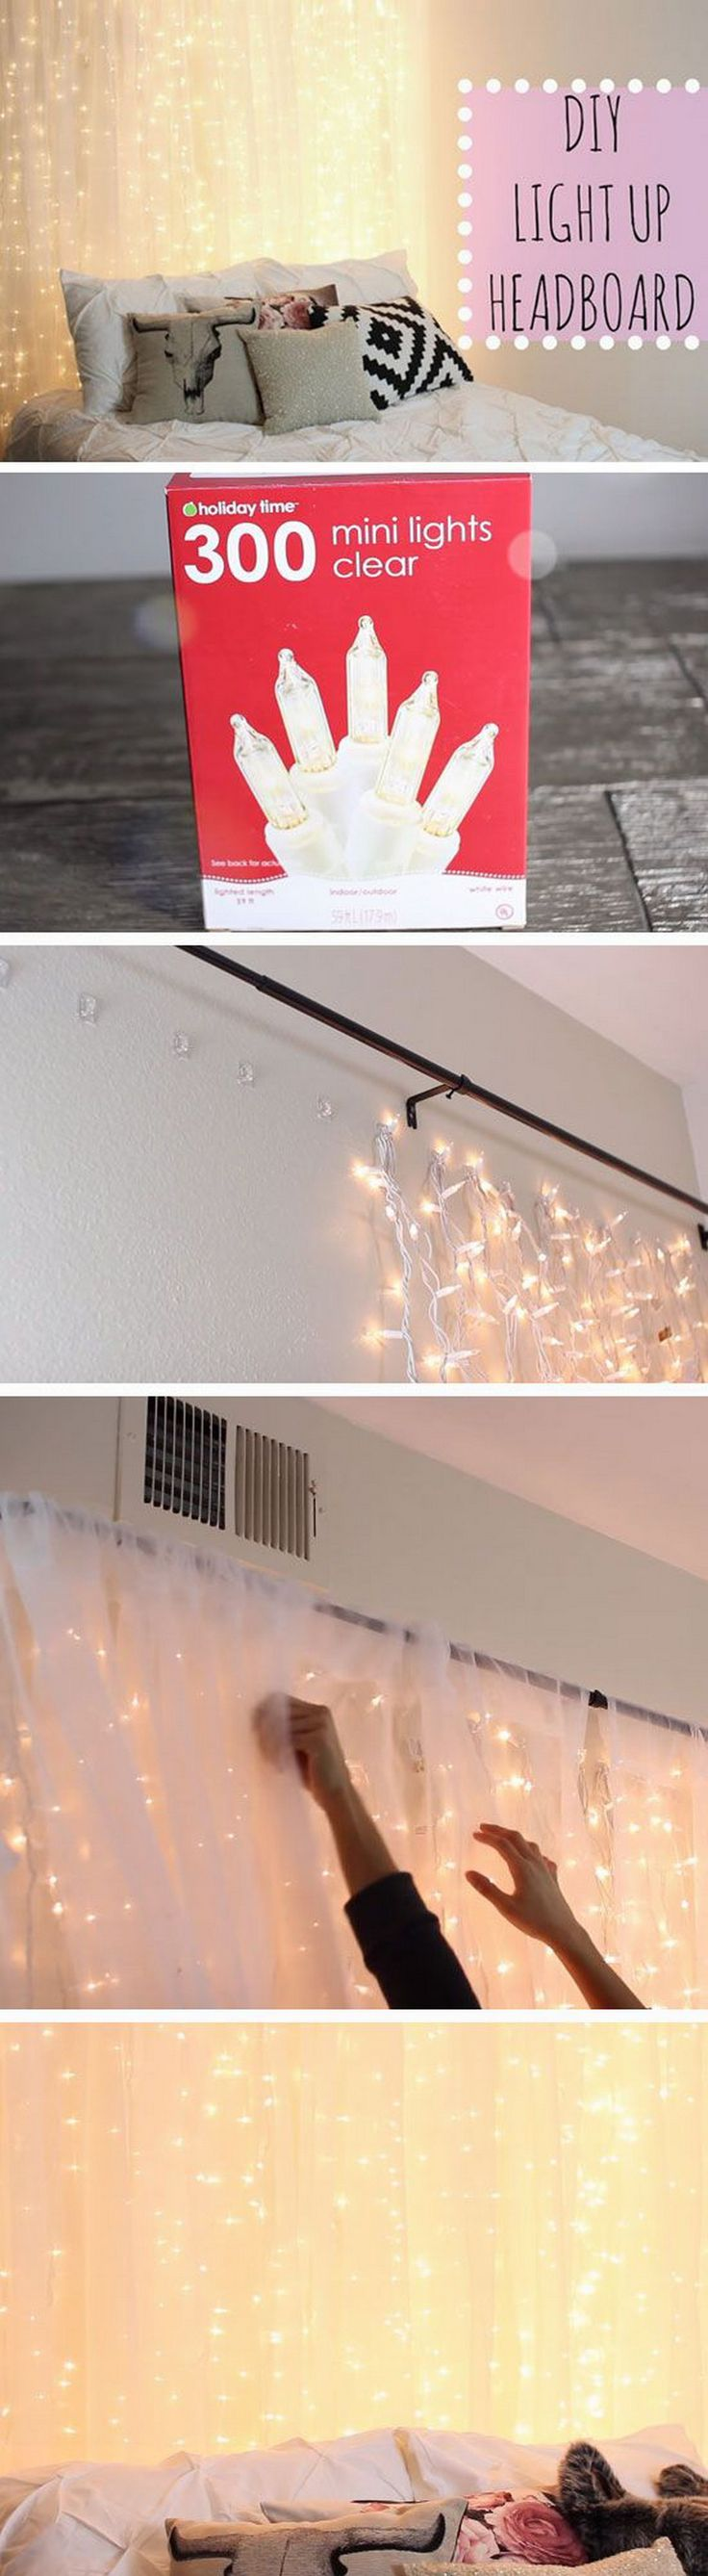 awesome 99 Best DIY Room Decorating Ideas for Teens http://www.99architecture.com/2017/07/08/99-best-diy-room-decorating-ideas-teens/